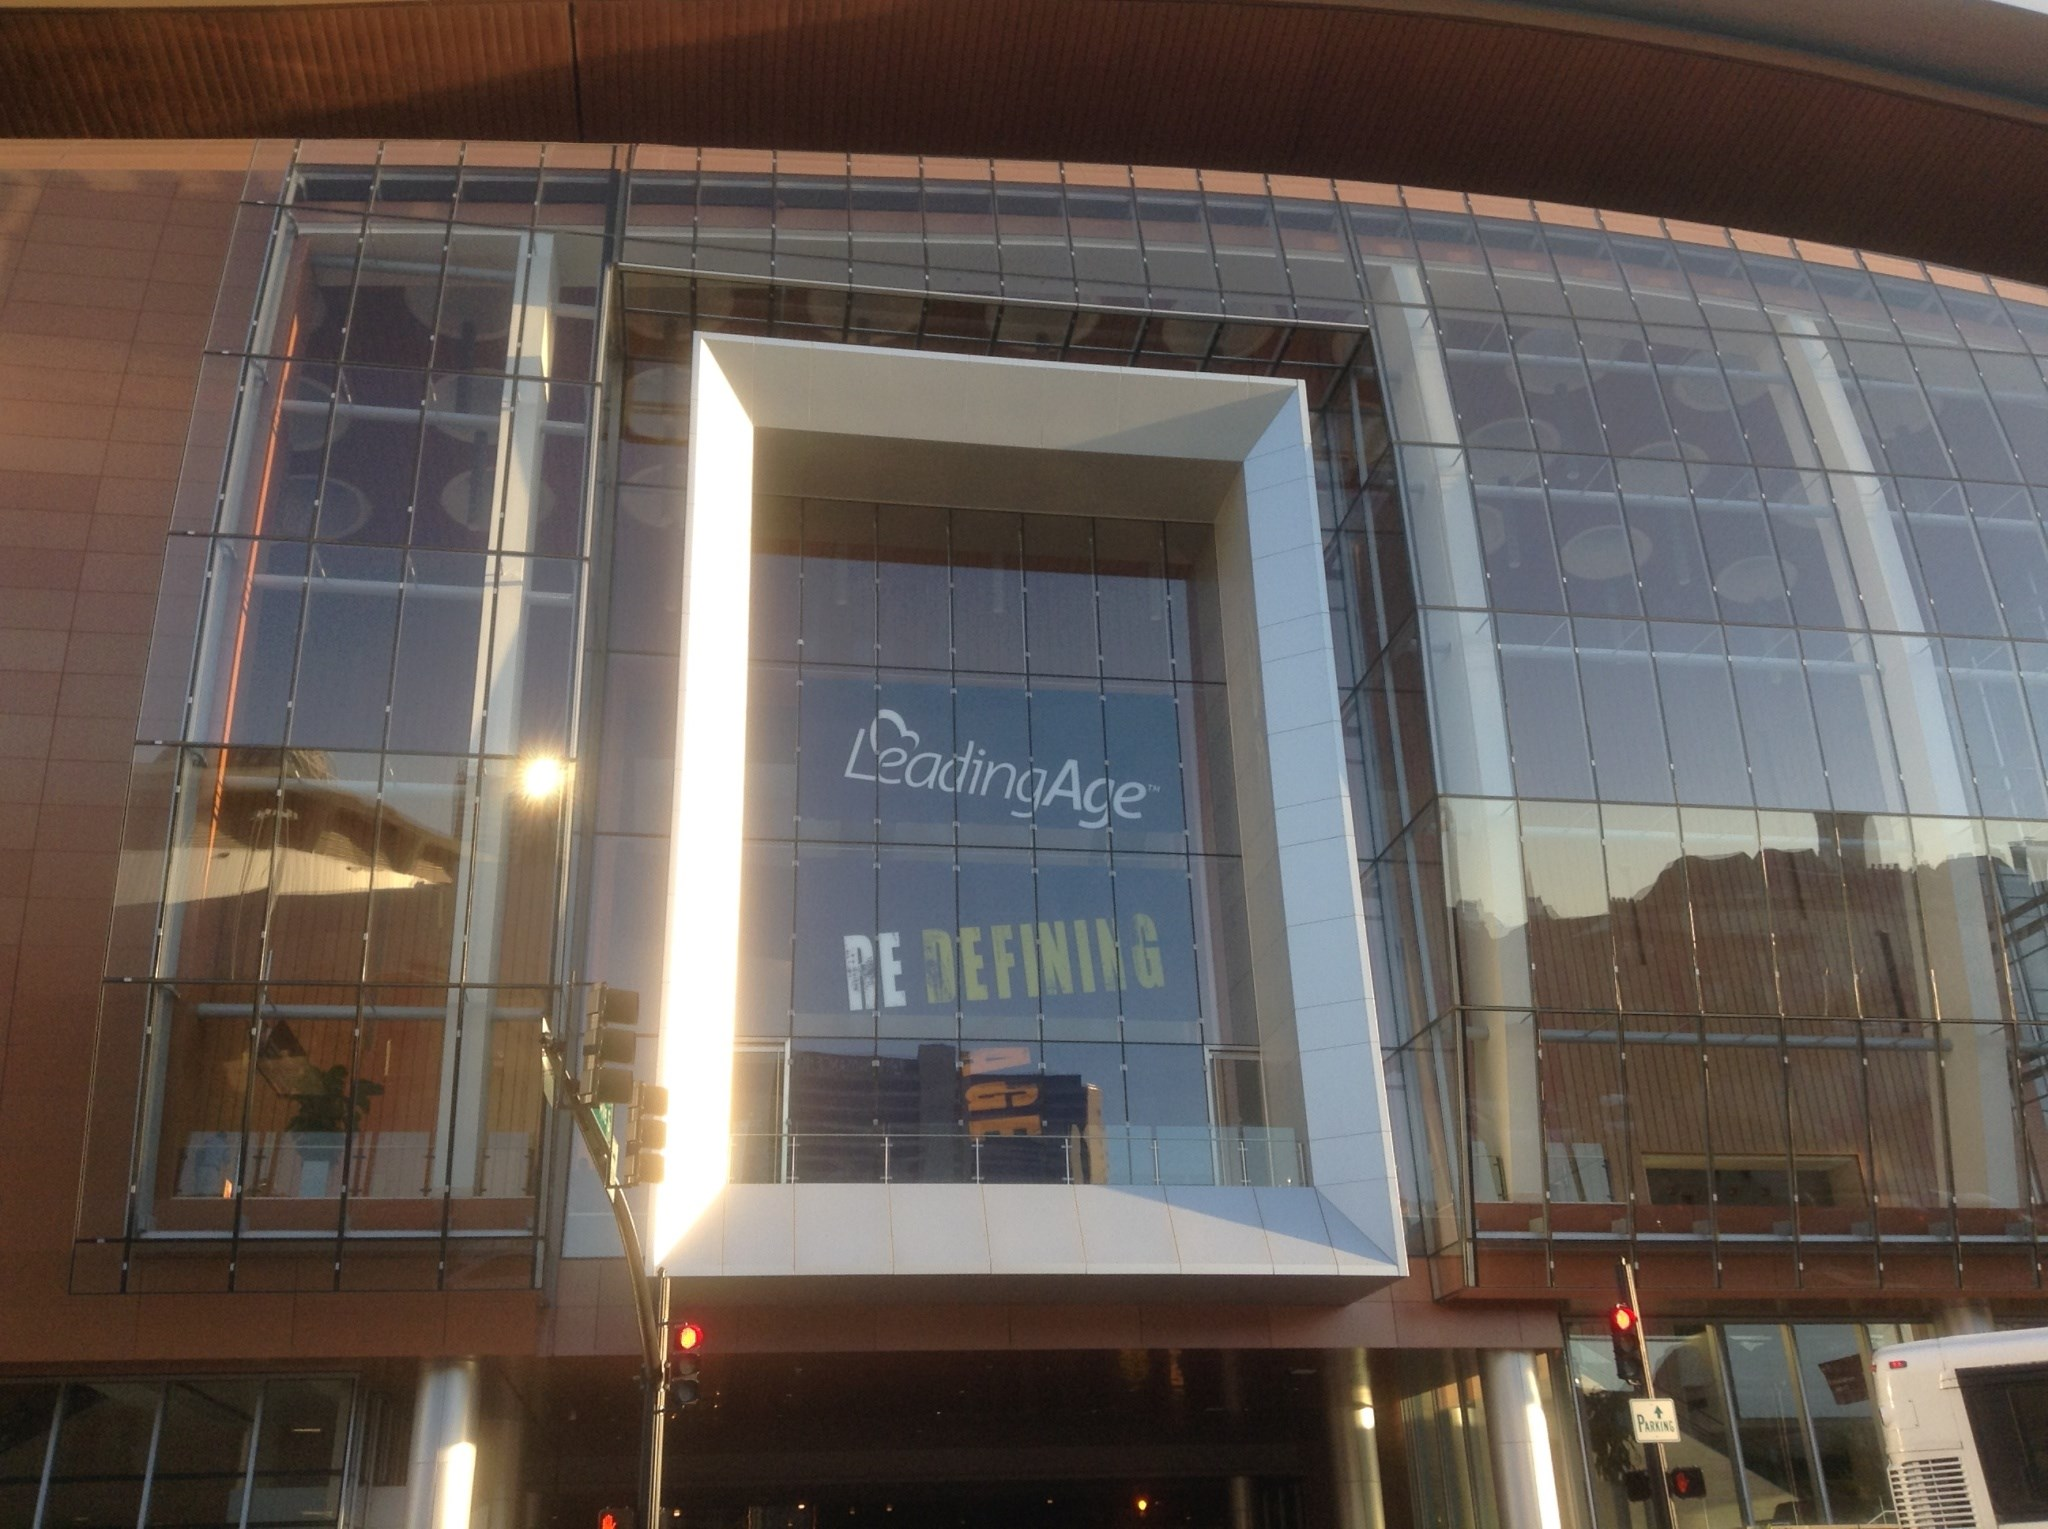 The annual LeadingAge conference is being held at the Music City Center in Nashville.